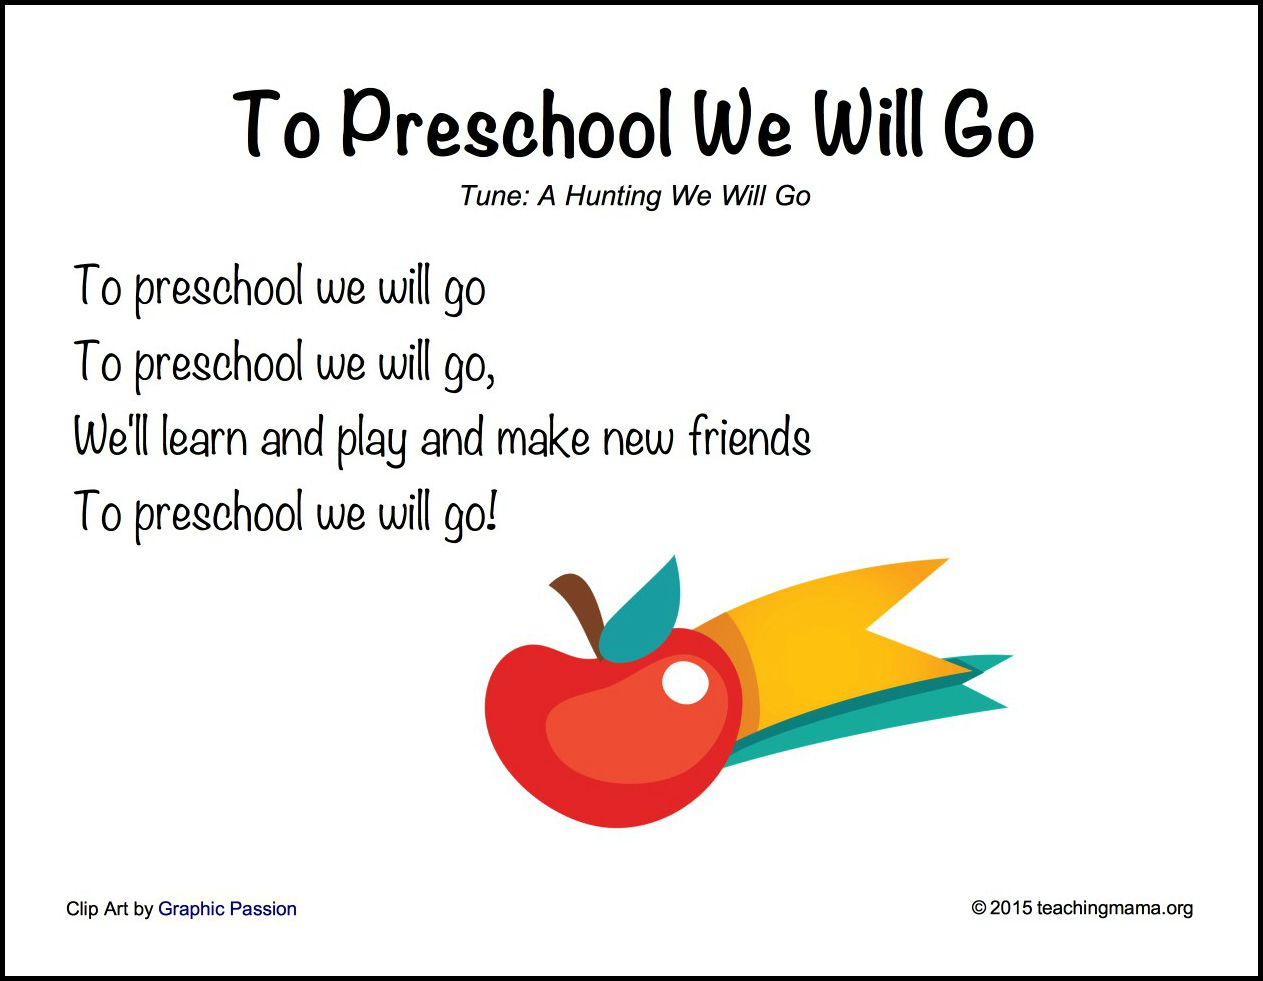 To Preschool We Will Go